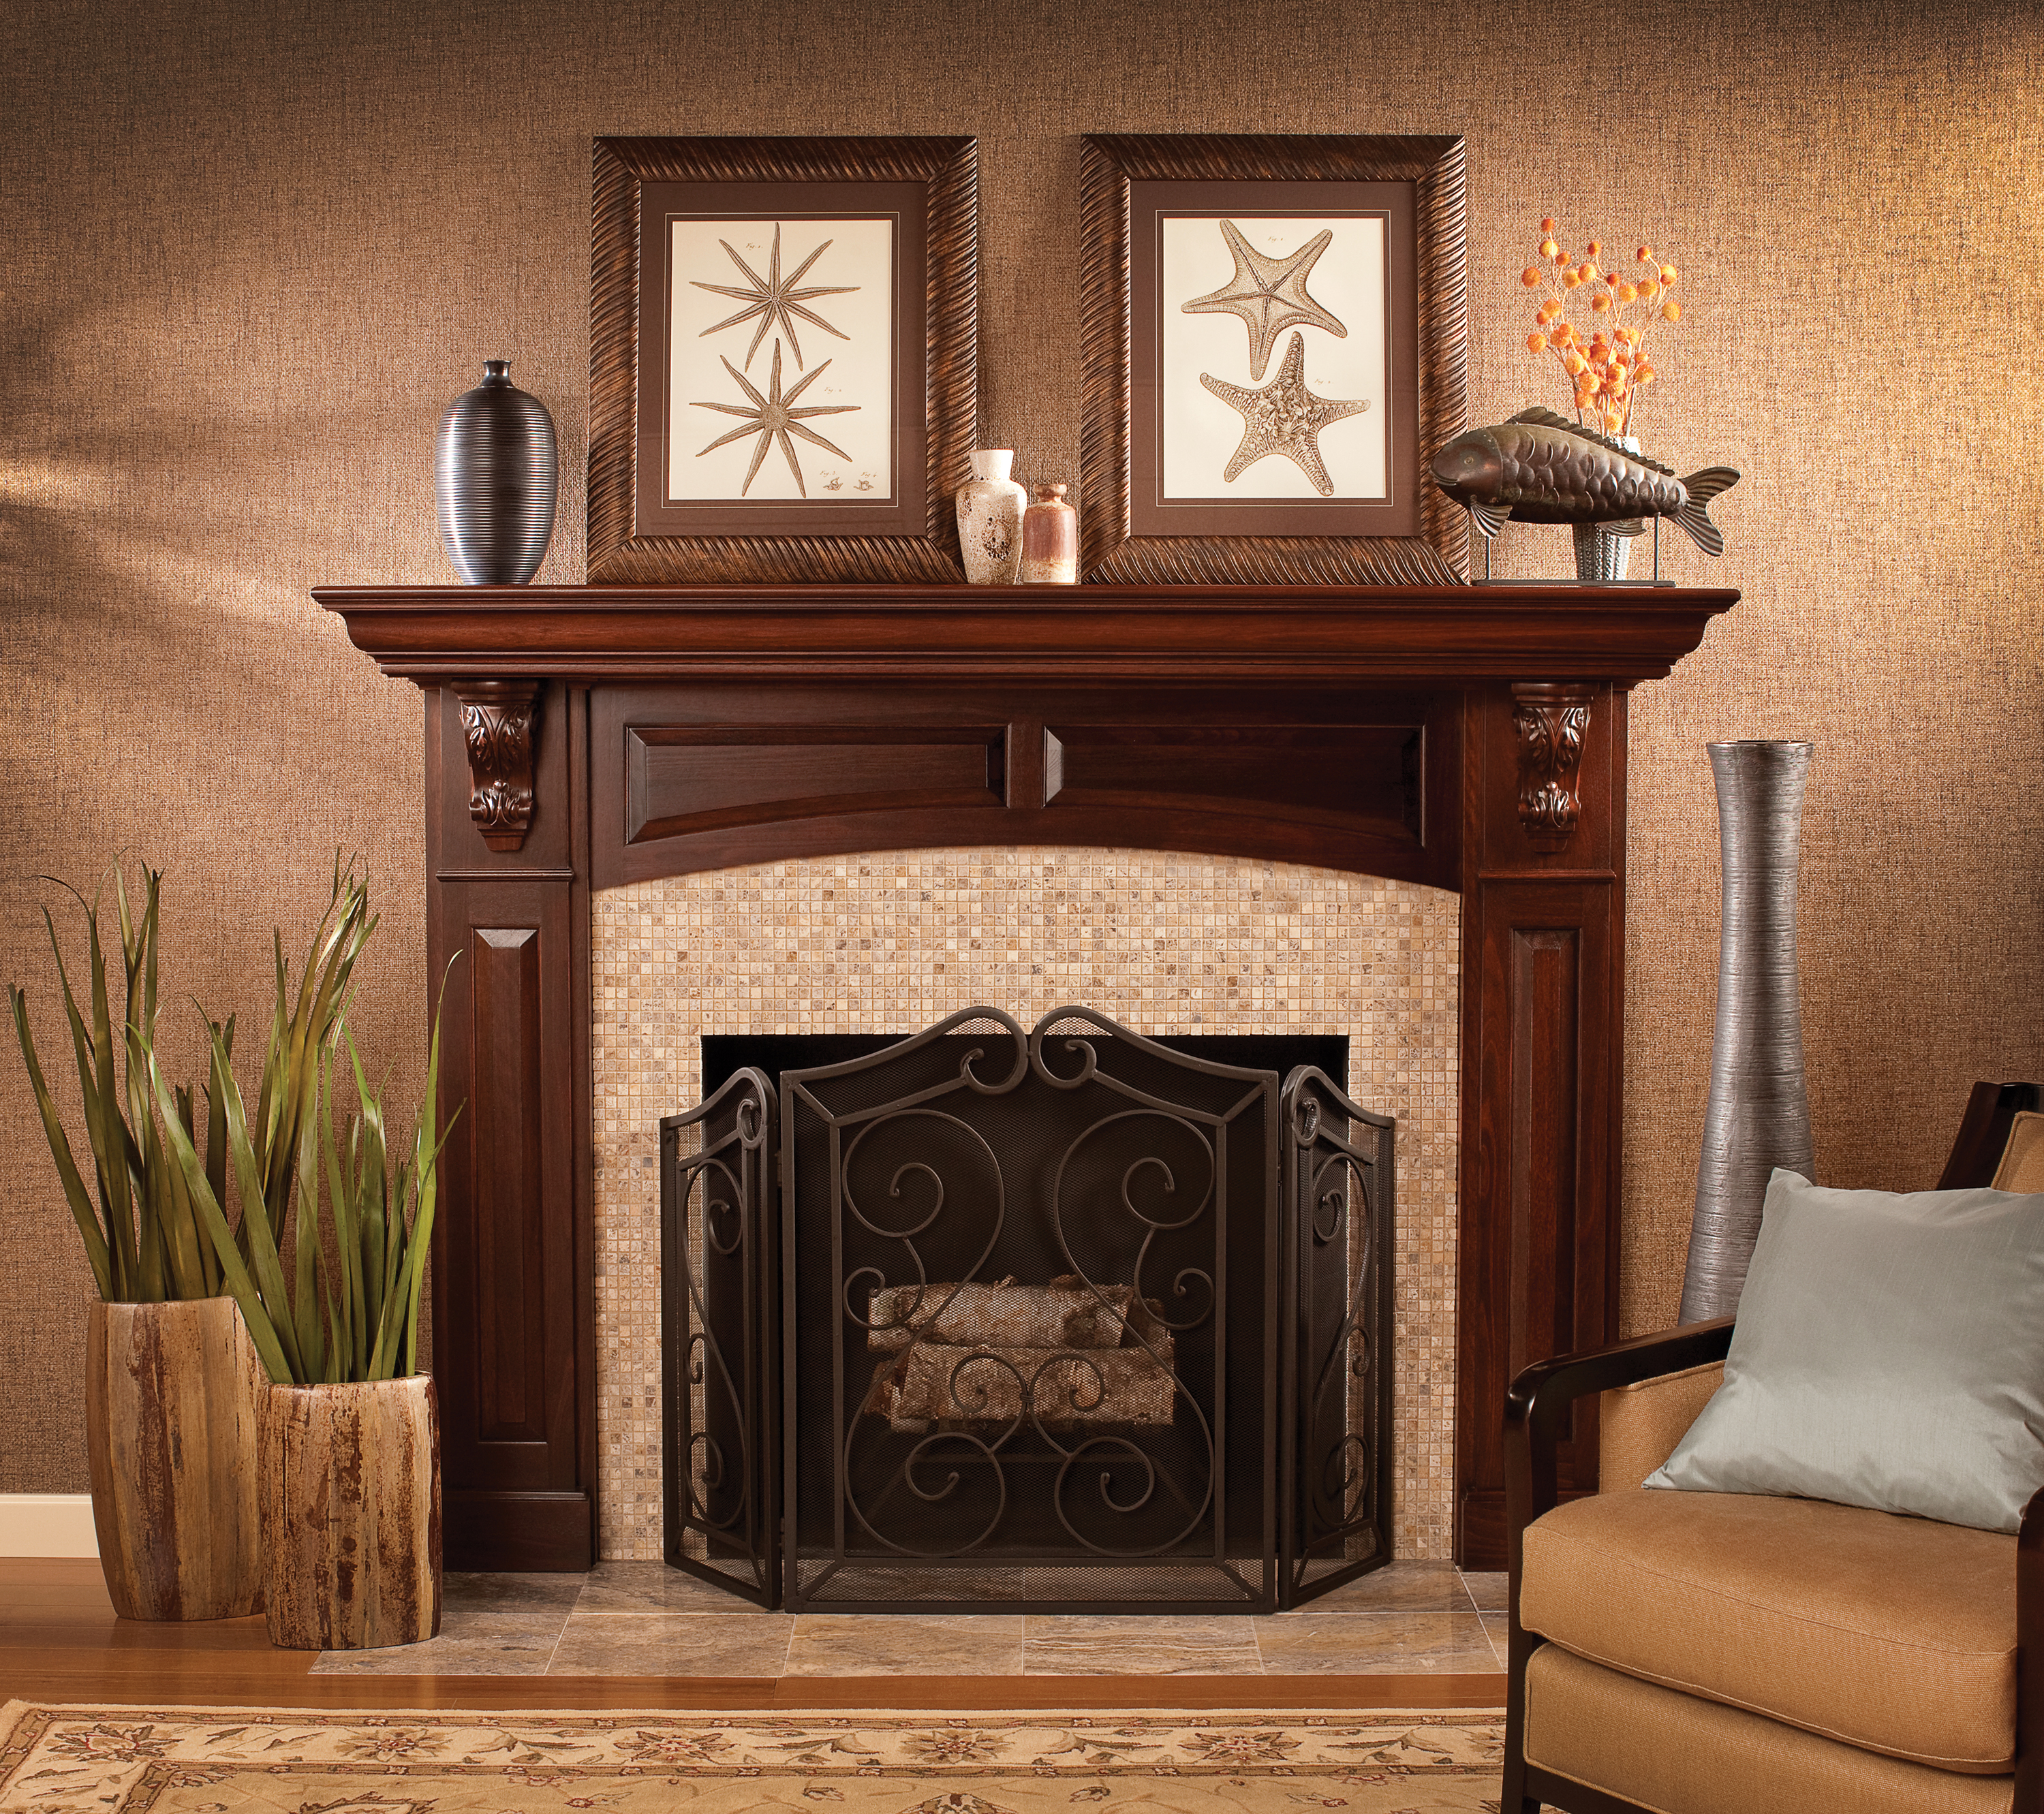 on mantelpiece room surround decor mantels for to living fireplace mantel put brick designs things decorating ideas